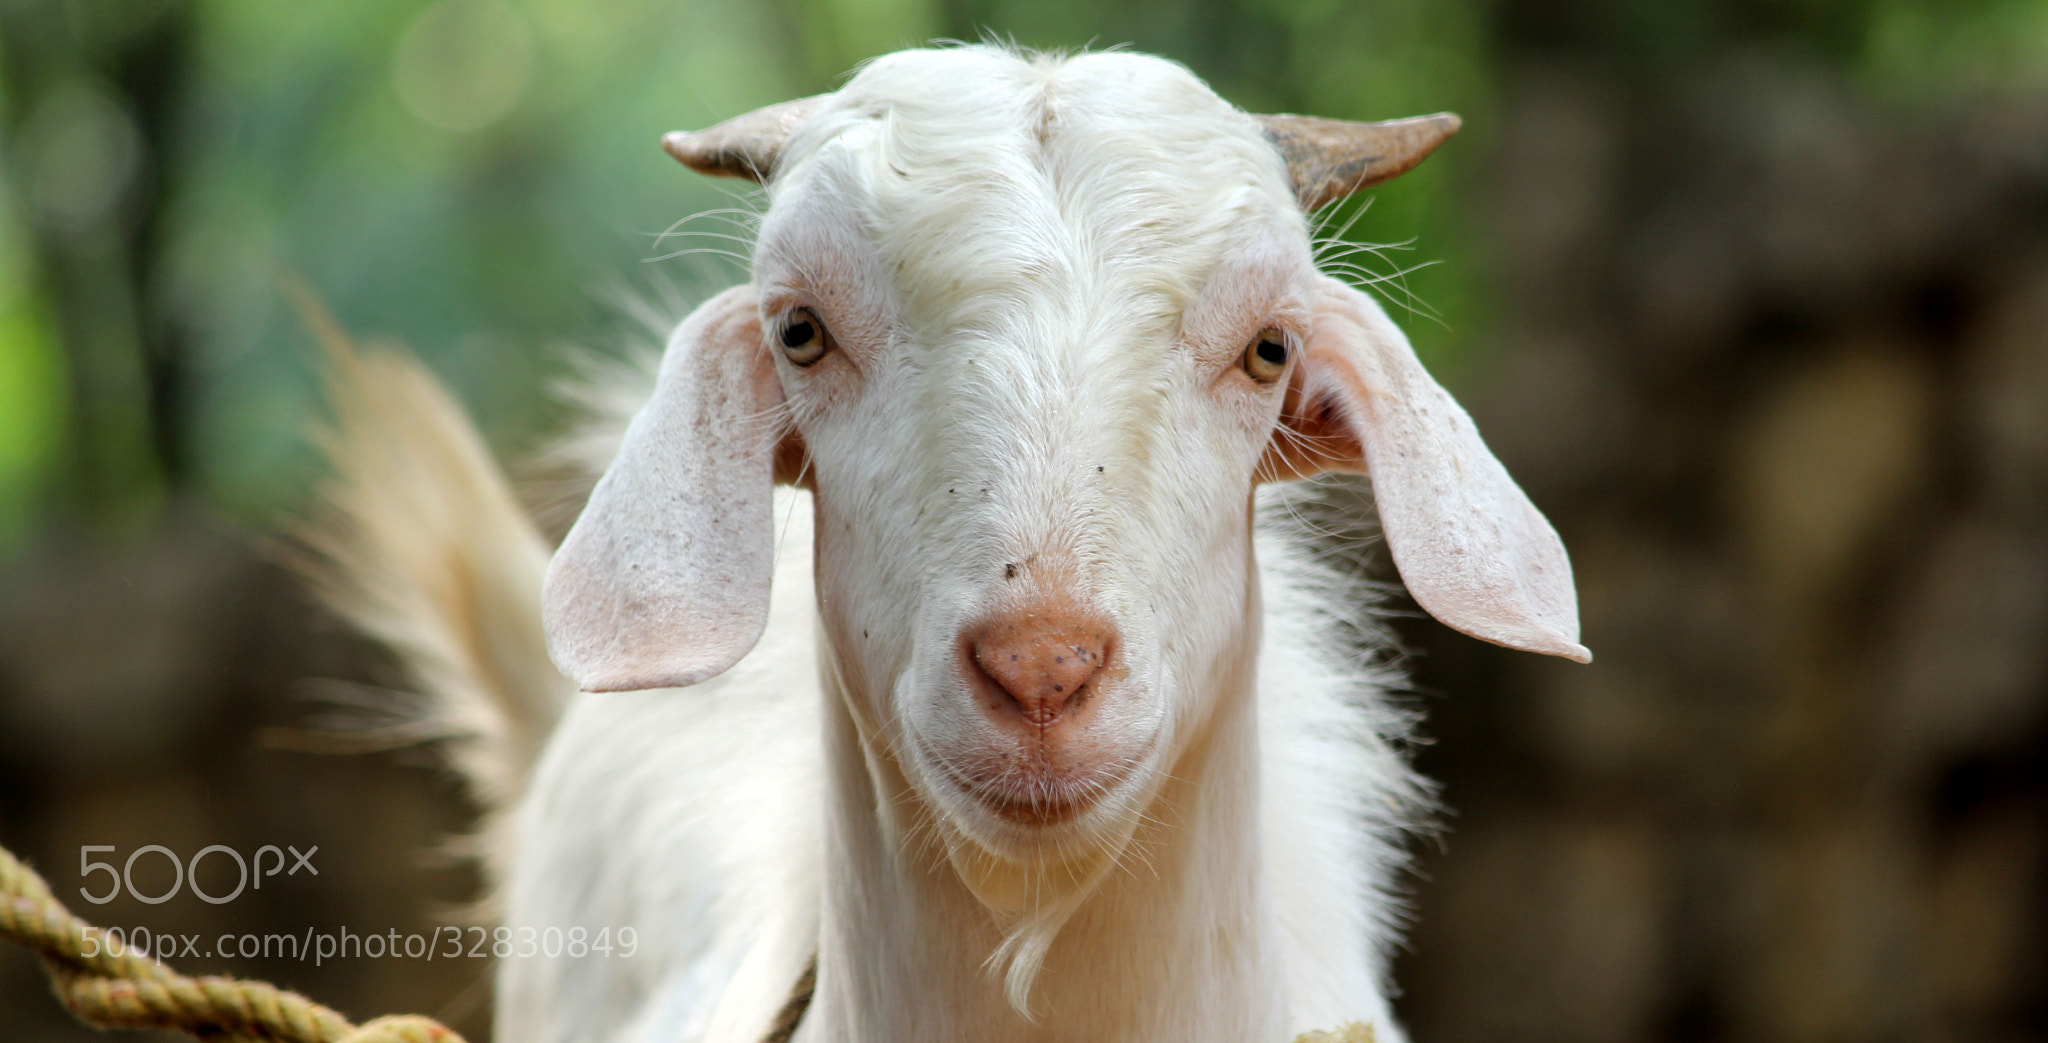 Photograph Goat by Ajith Kumar on 500px